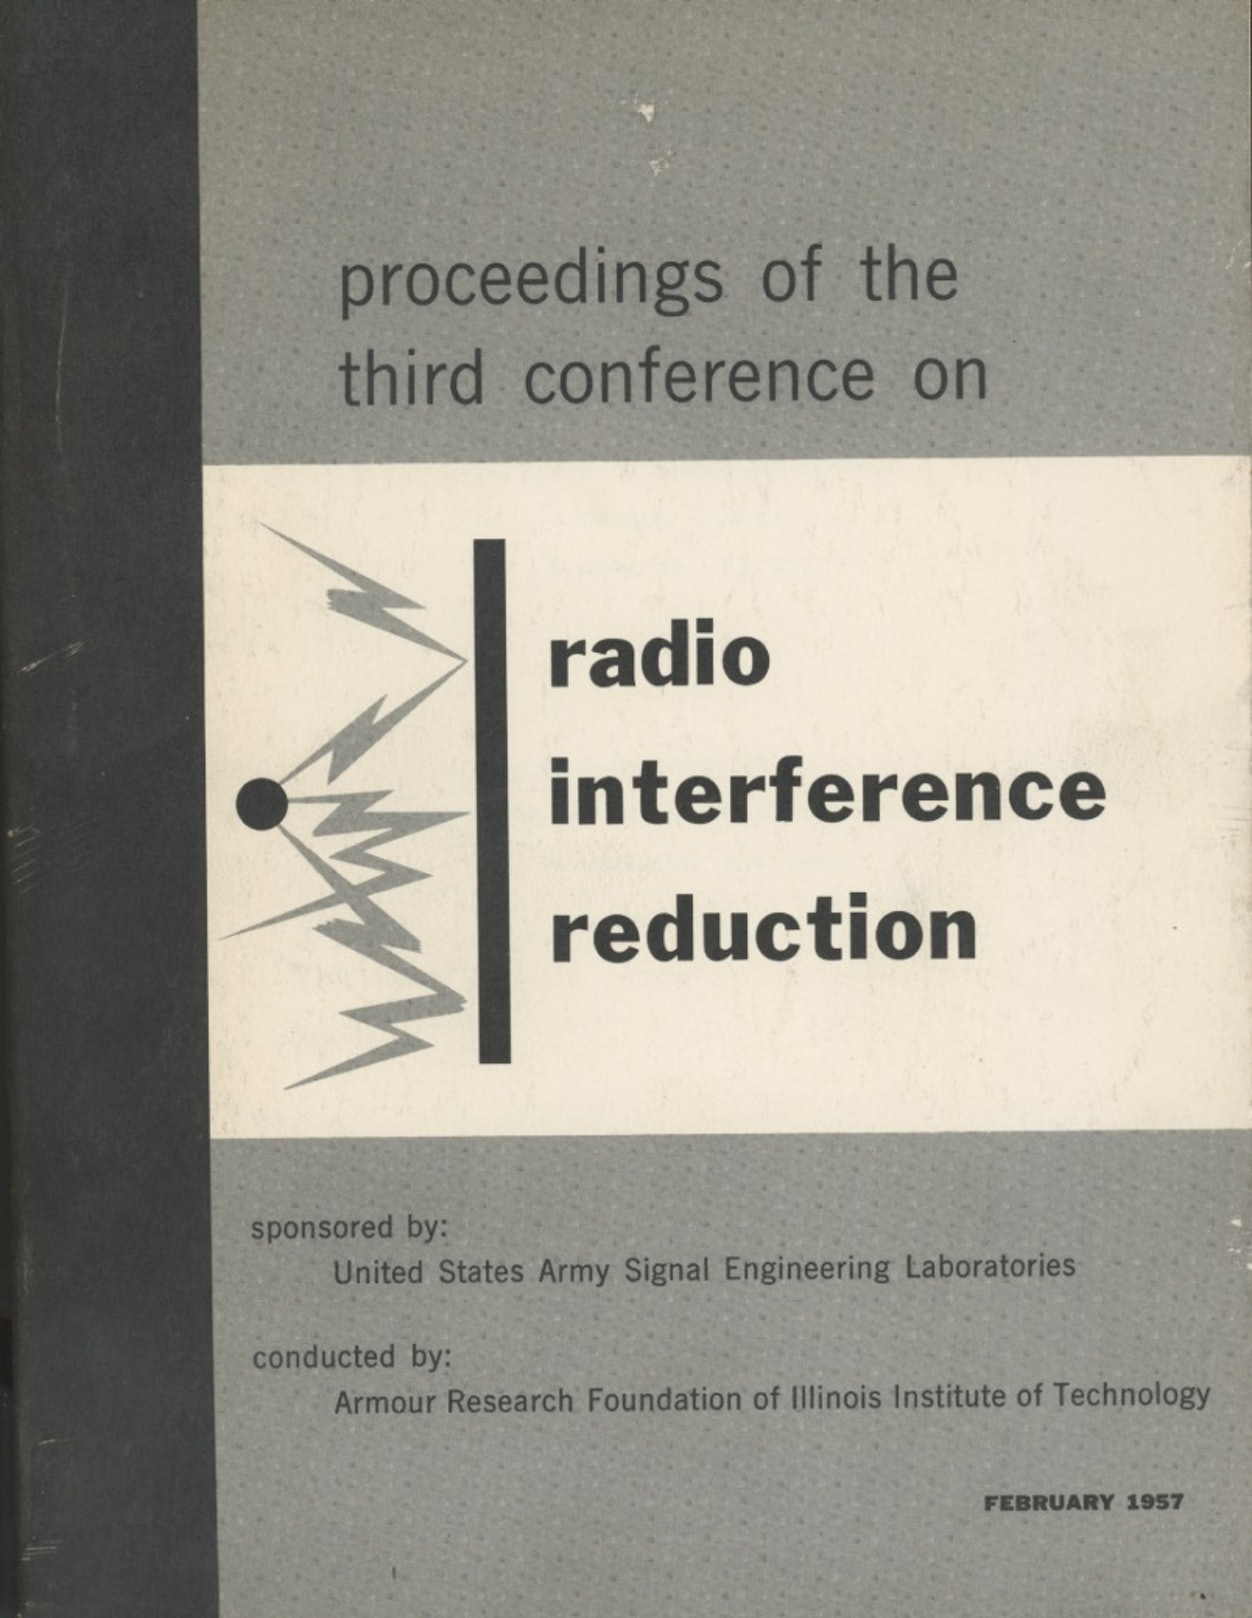 Proceedings of the Third Conference on Radio Interference Reduction